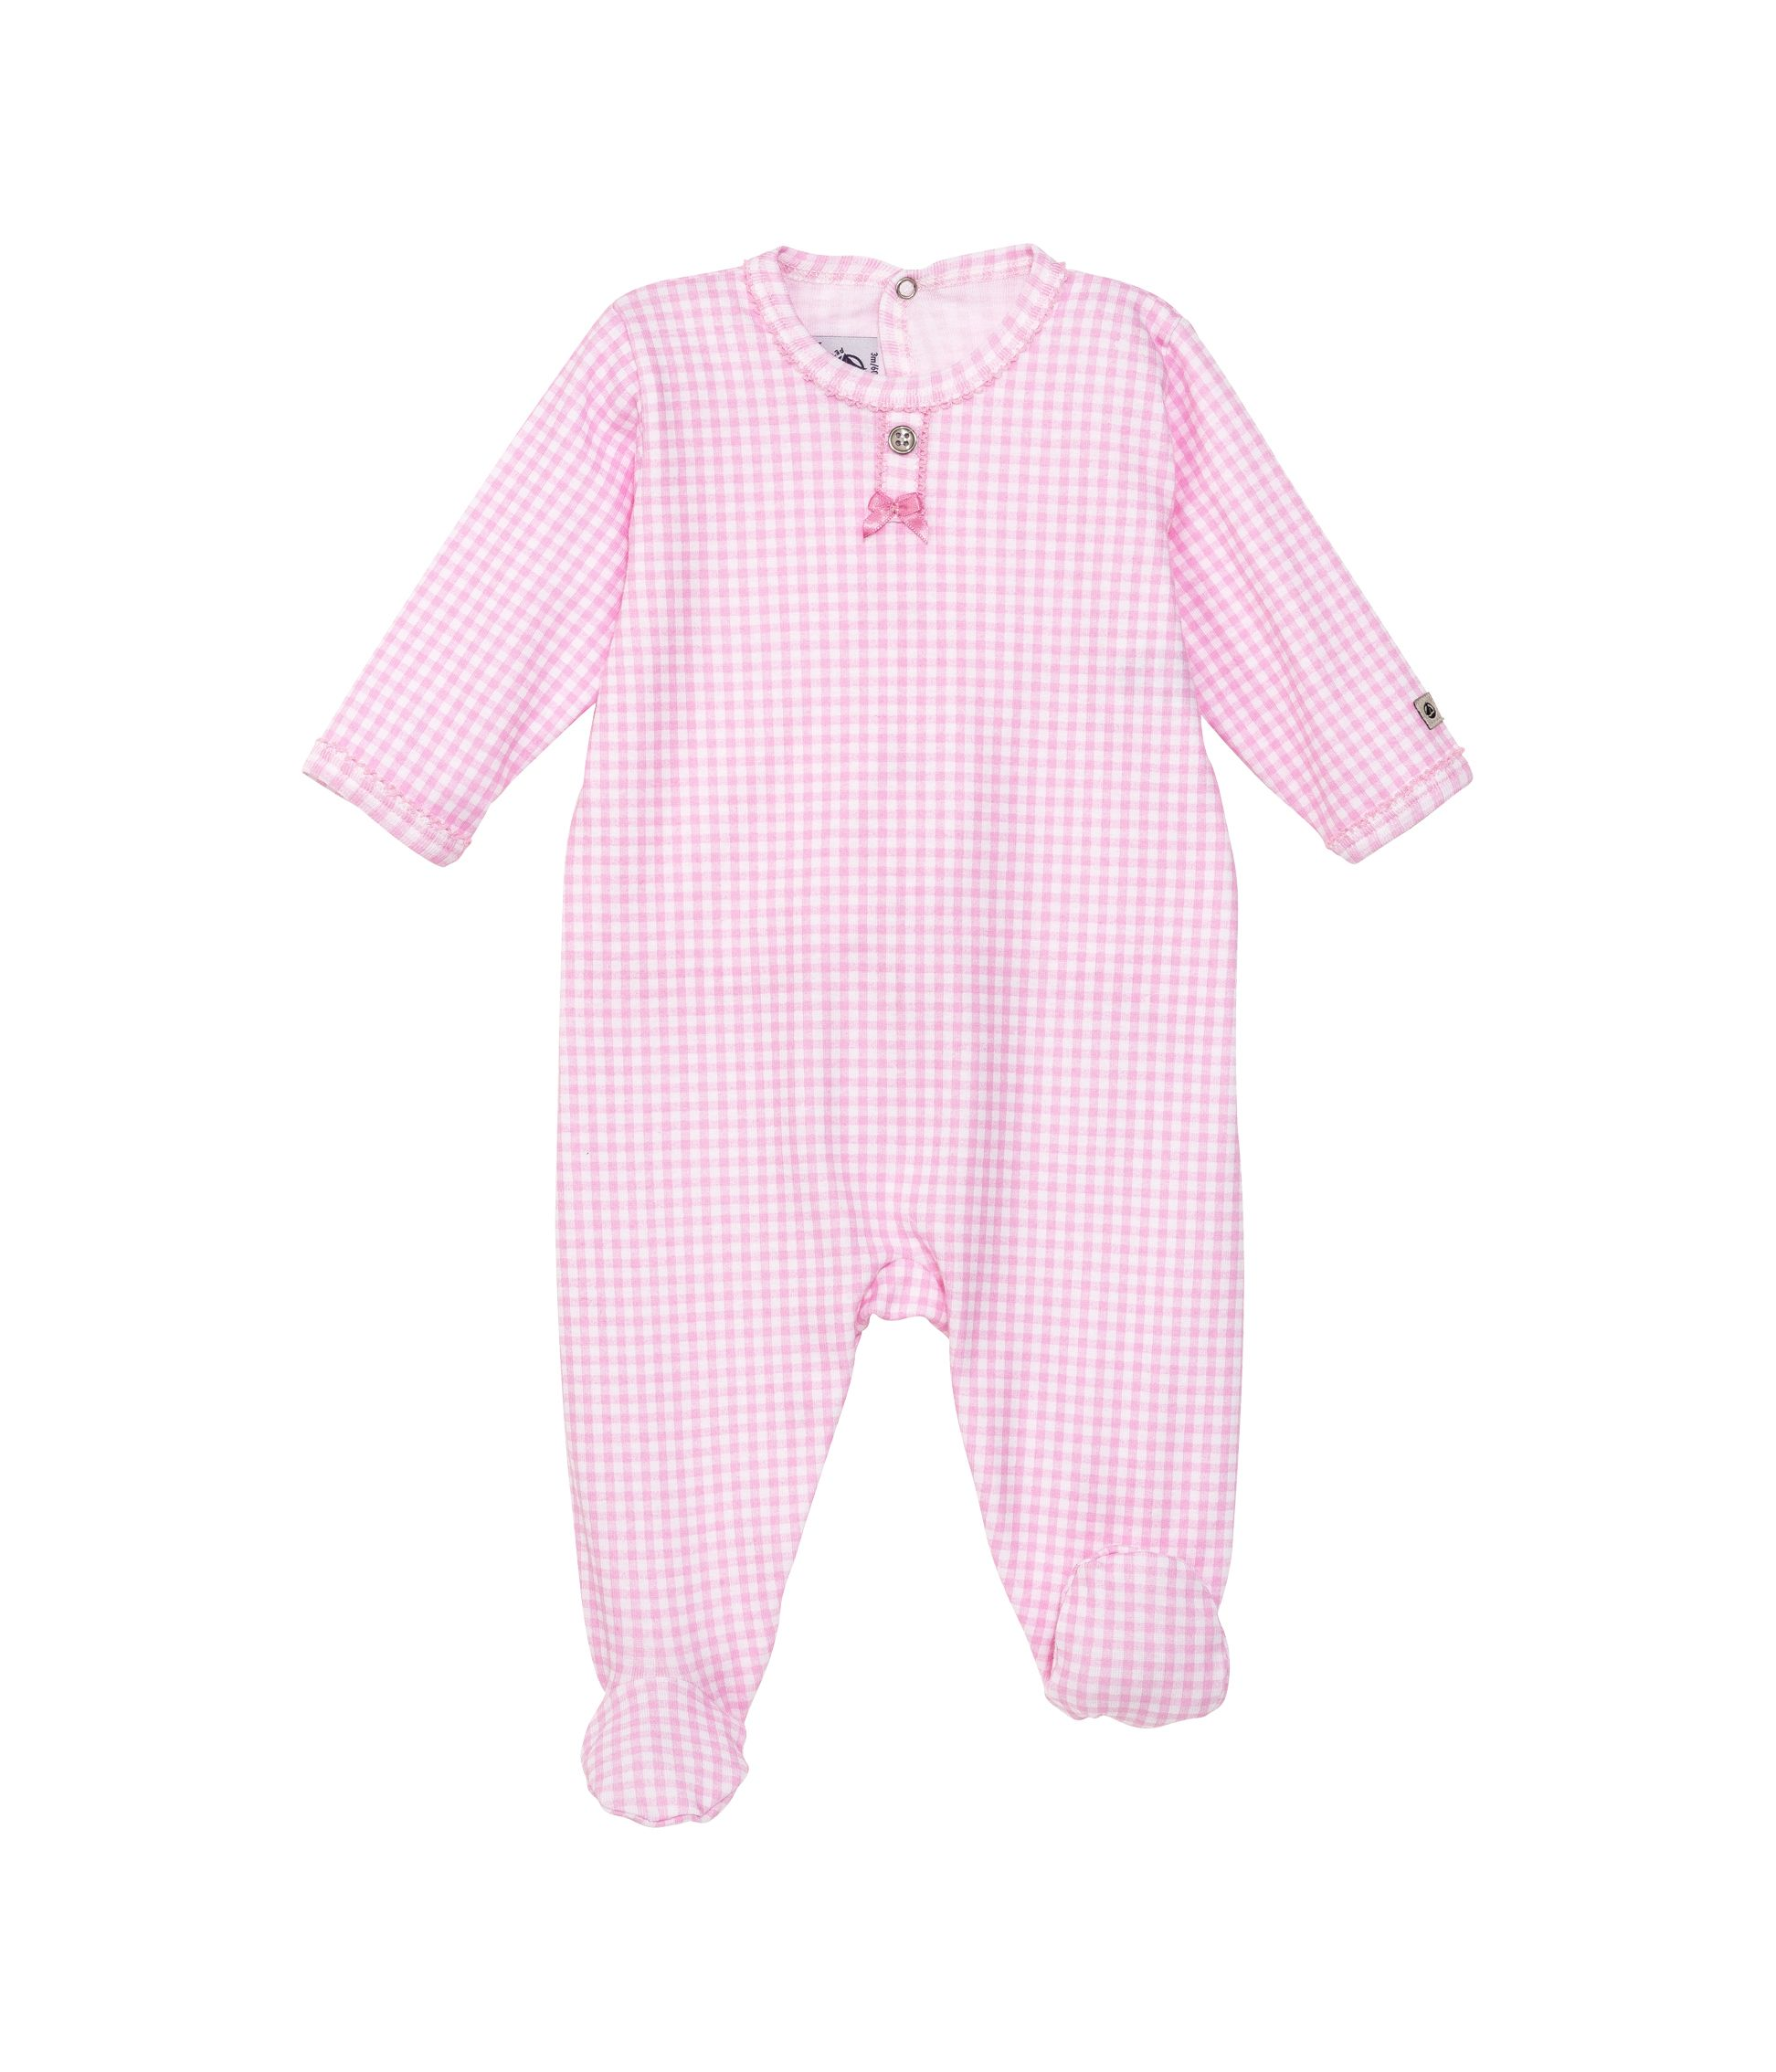 Baby girls gingham sleepsuit